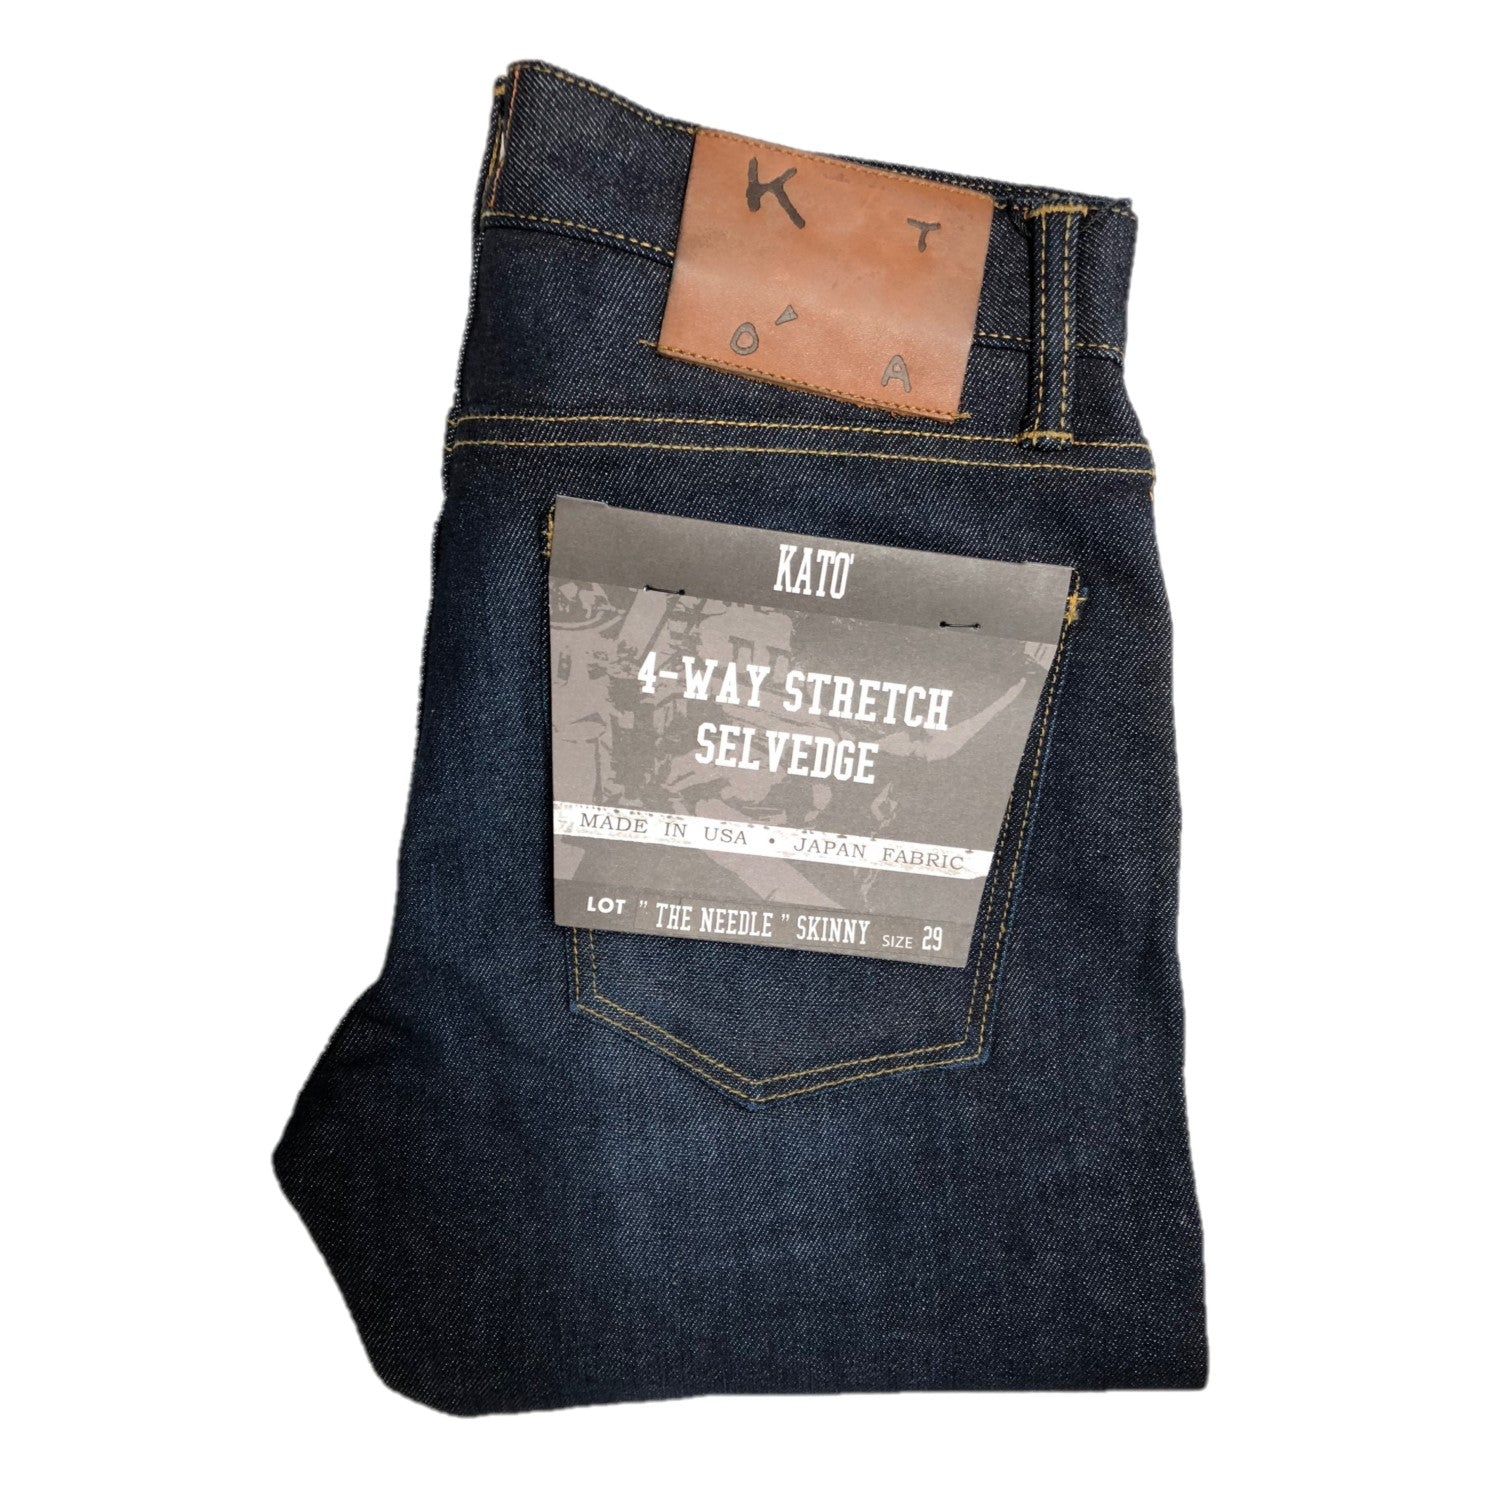 """THE NEEDLE"" SKINNY -LASER 10.5OZ 4-WAY STRETCH SELVEDGE JEANS"